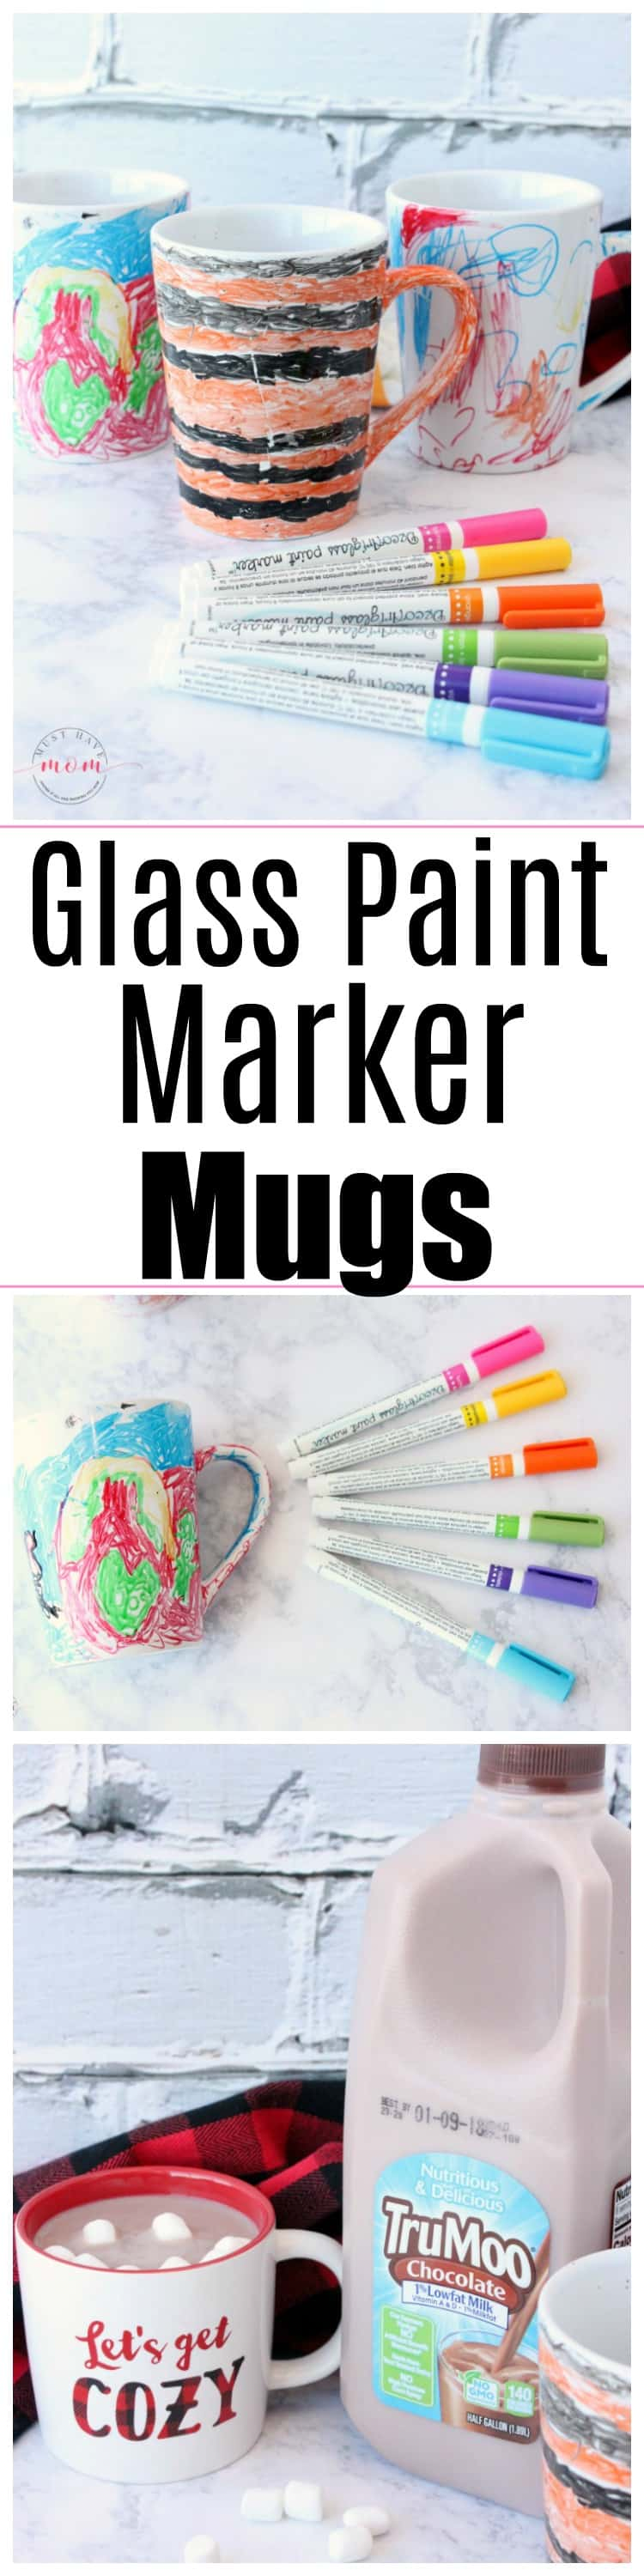 "DIY glass paint marker mugs. Homemade gifts kids can make. ""Sharpie mug"" DIY that actually stays on! + TruMoo Chocolate Milk warmed up for a mess-free hot cocoa treat! #ad"